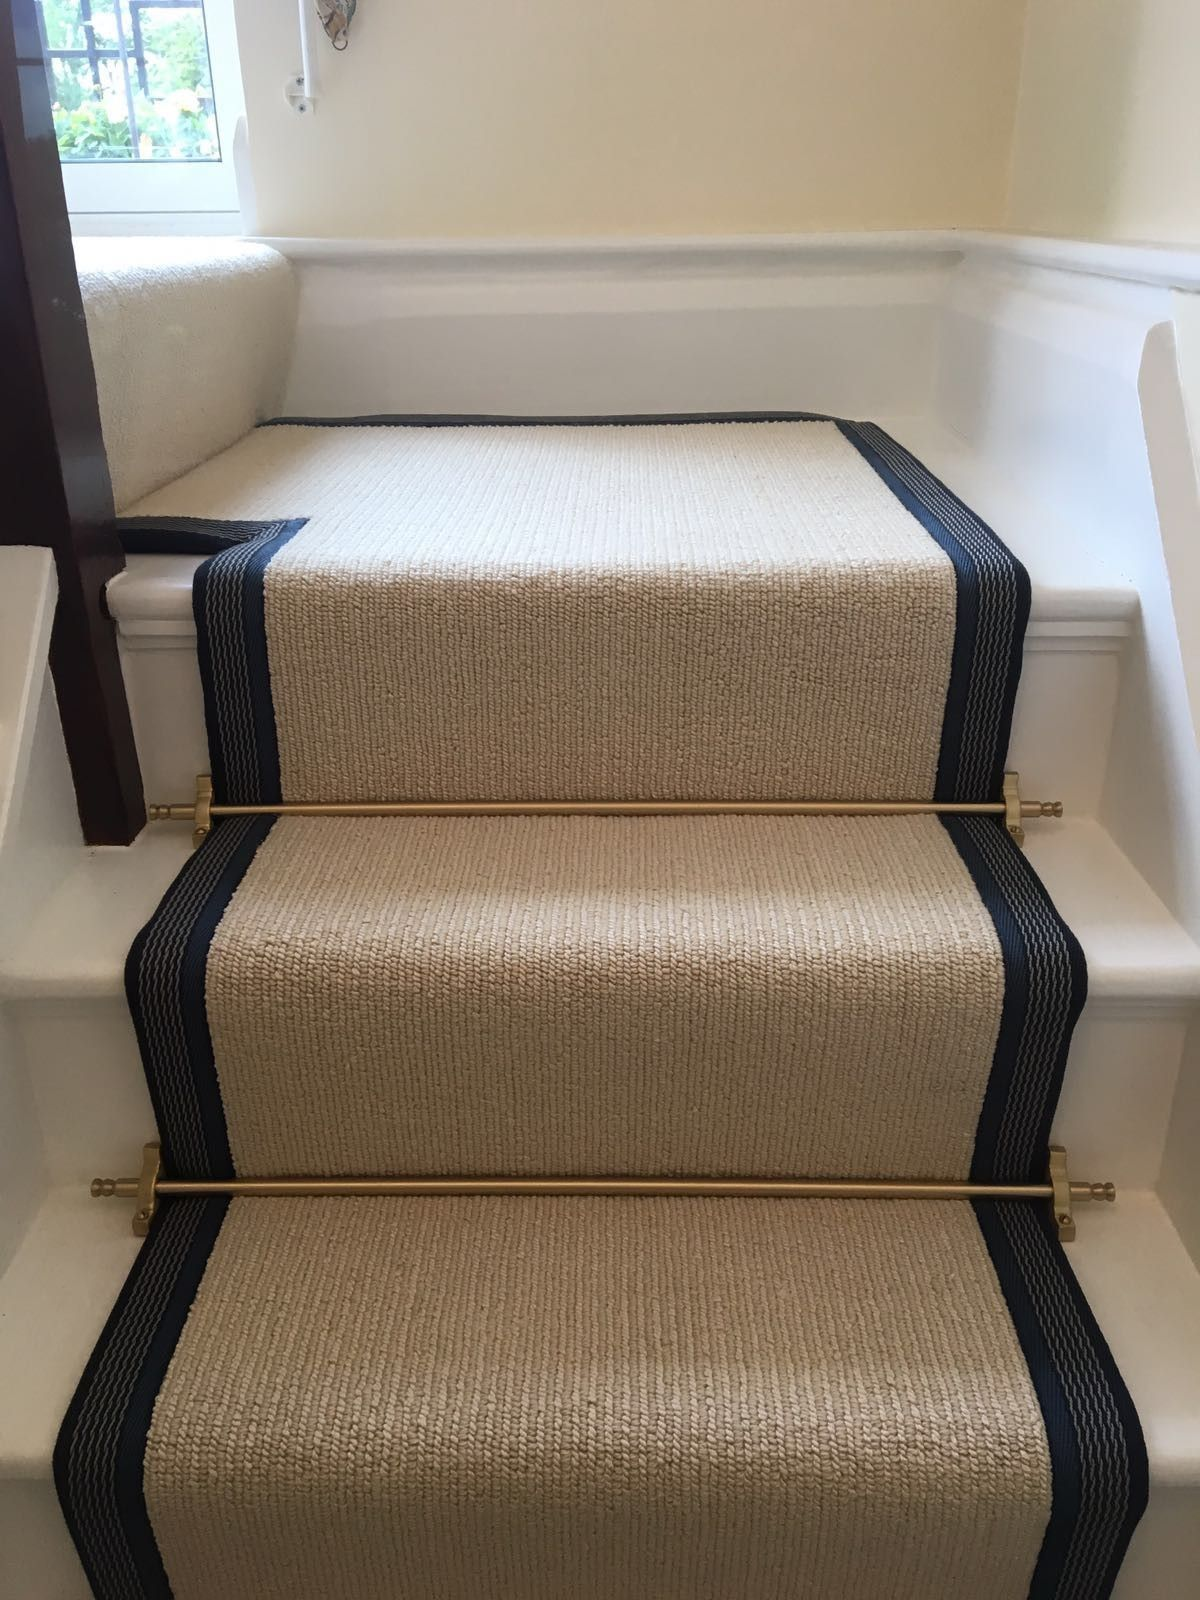 Fantastic Cost Free Cream Carpet Bedroom Thoughts When It Comes To   Stair Carpet Fitting Cost   Stair Runner   Wood   Basement Stairs   Laminate Flooring   Flooring